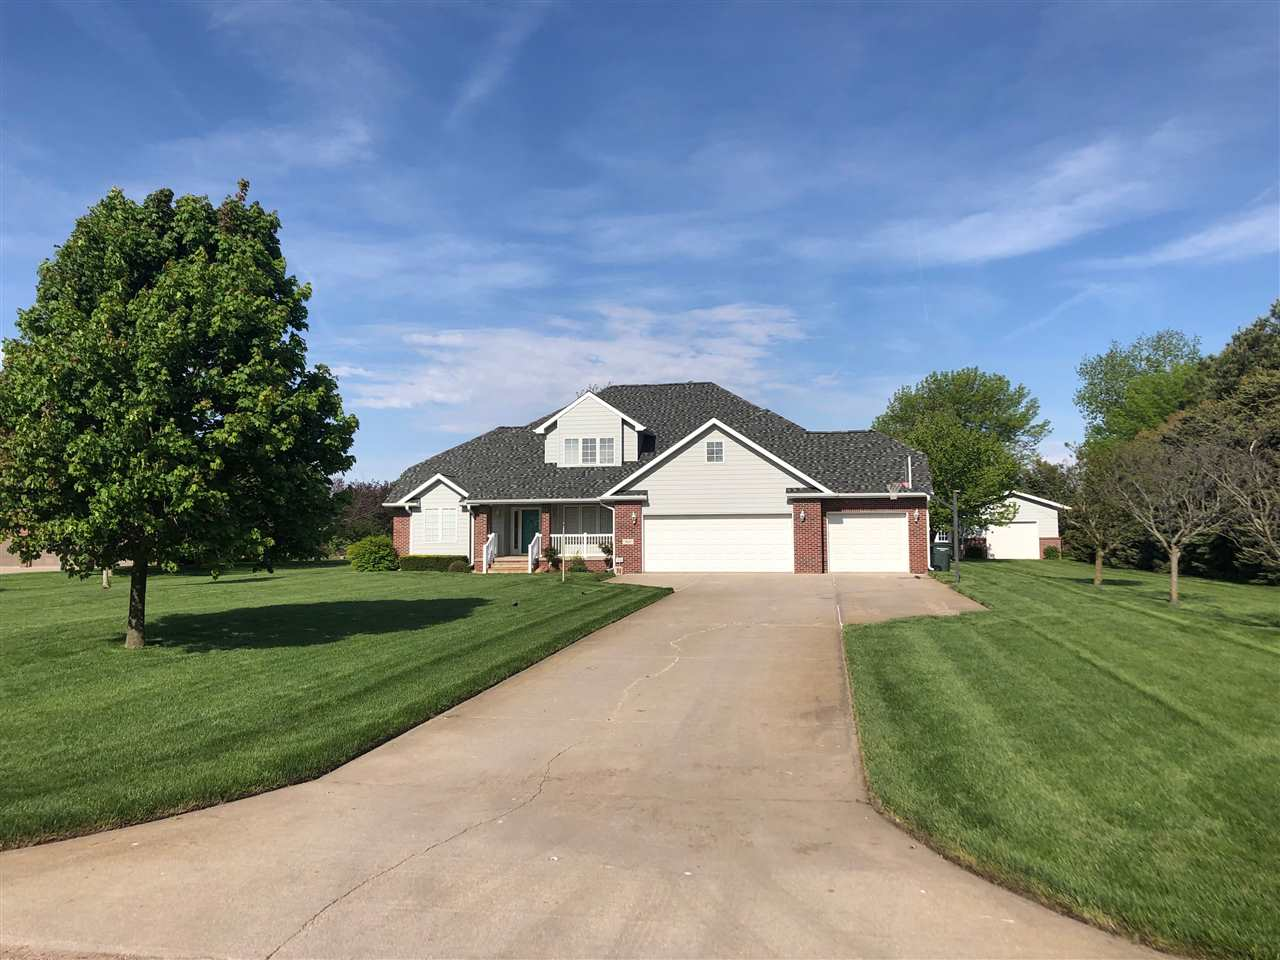 5645 1st Ave., Hastings, Nebraska